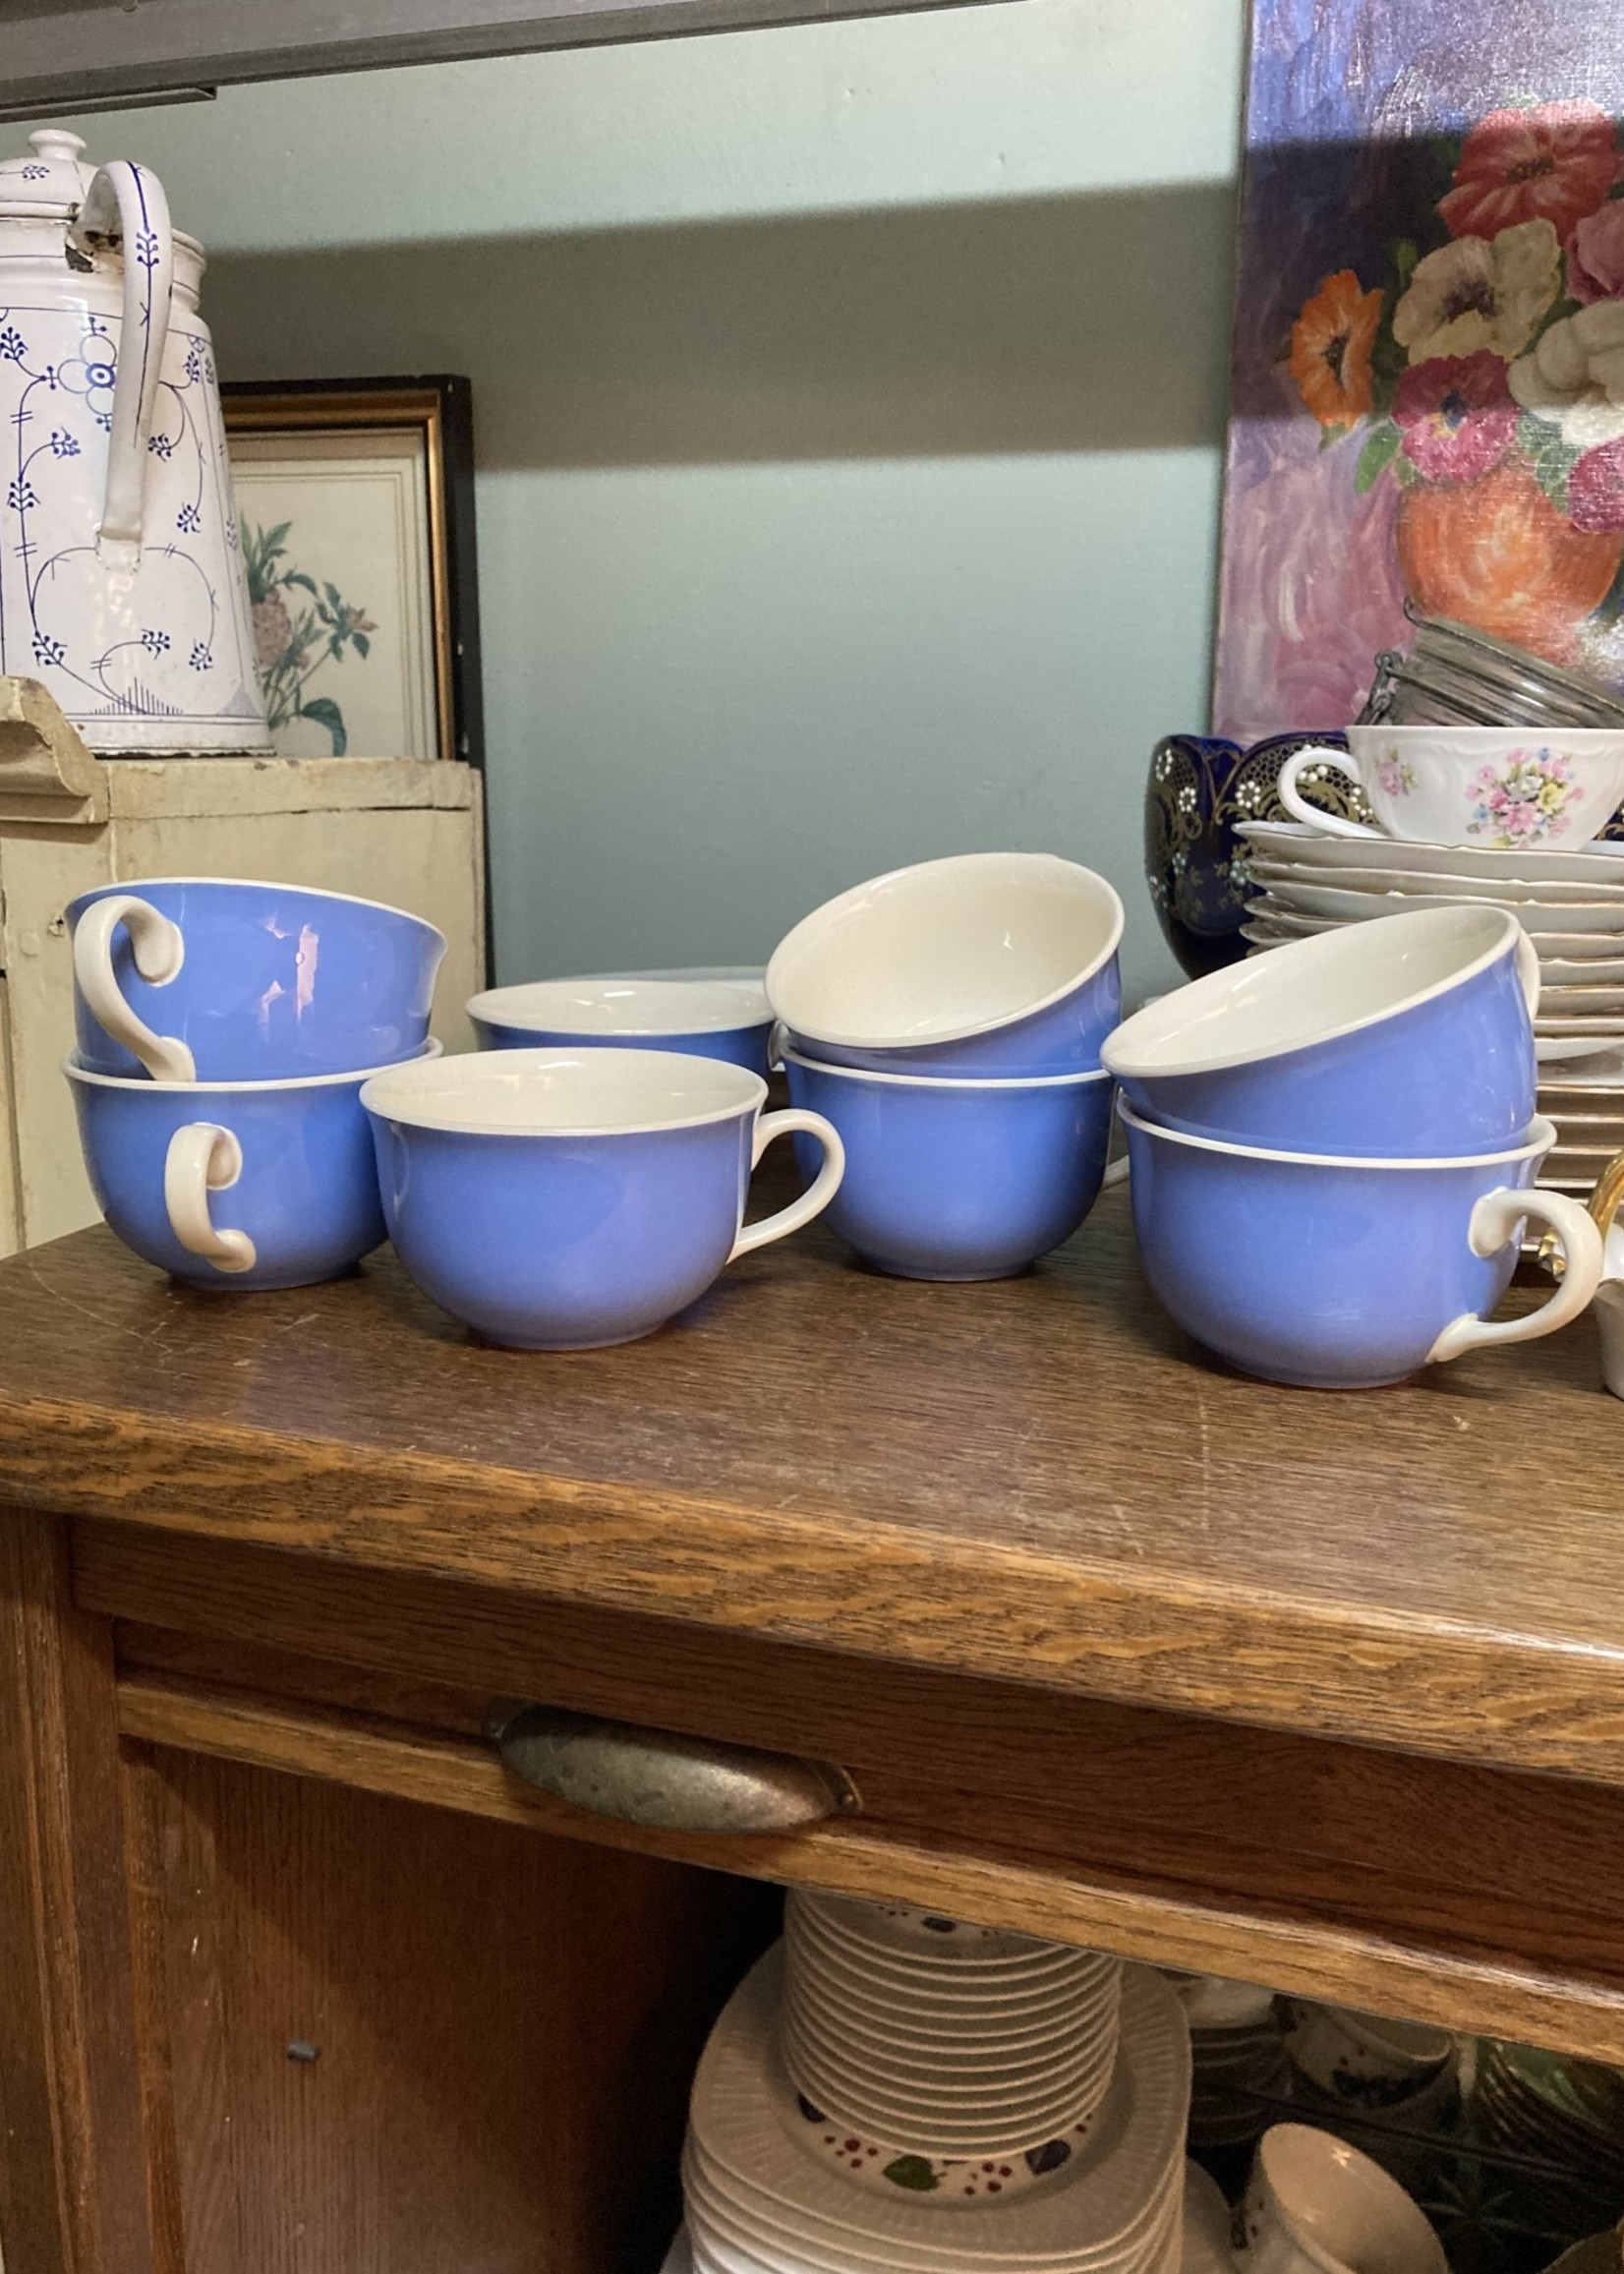 Coffee cups Blue Orléans by Villeroy & Boch without plate